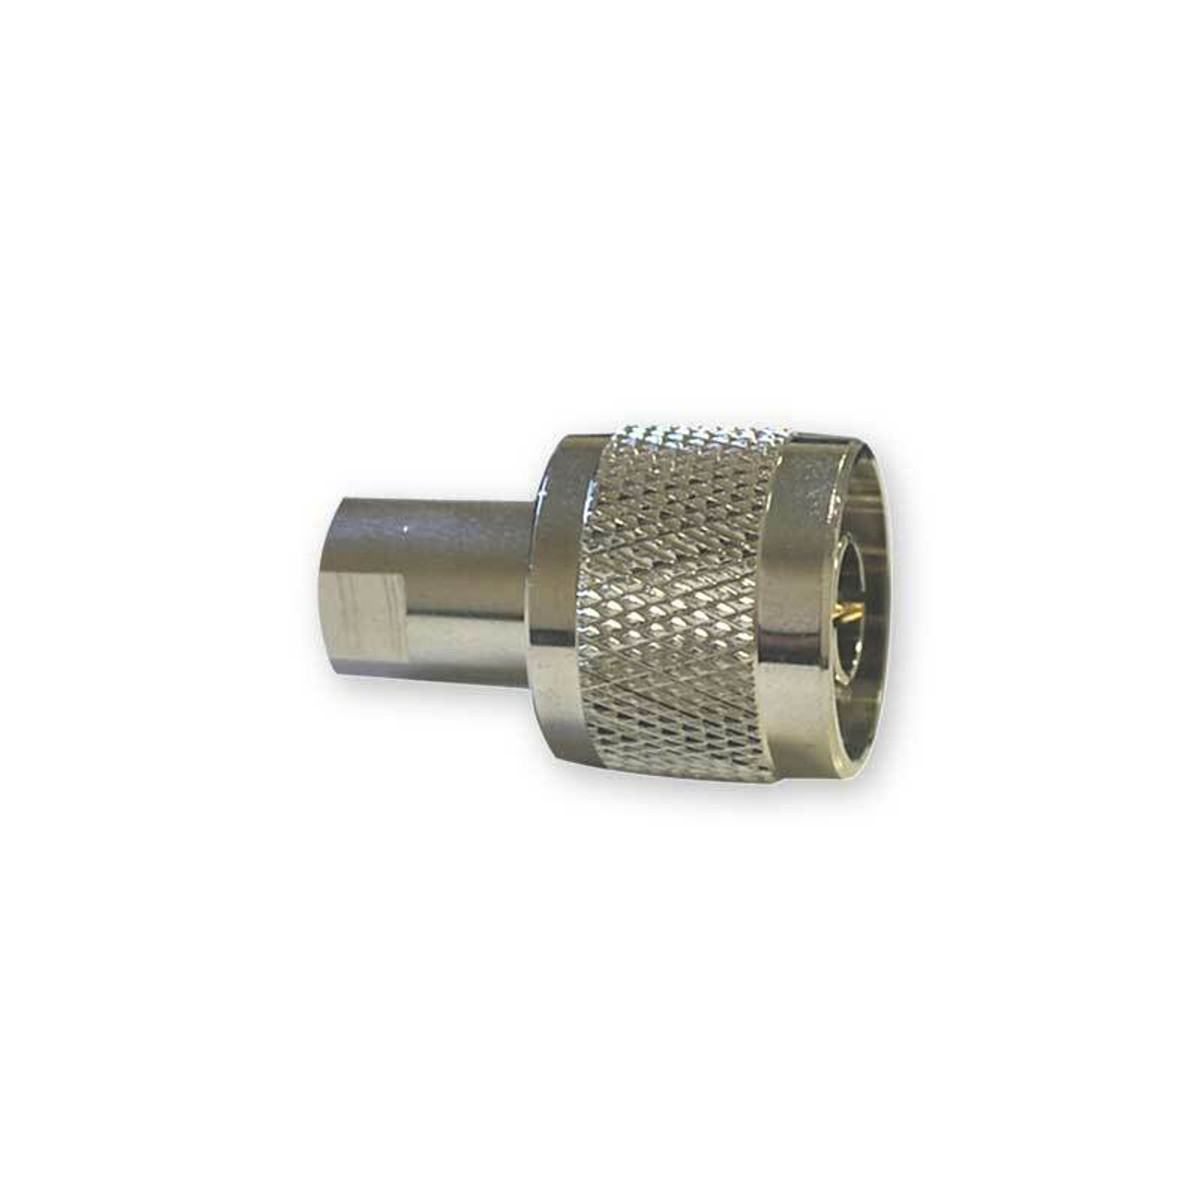 SureCall SureCall N-Male to FME-Male Connector or SC-CN-04